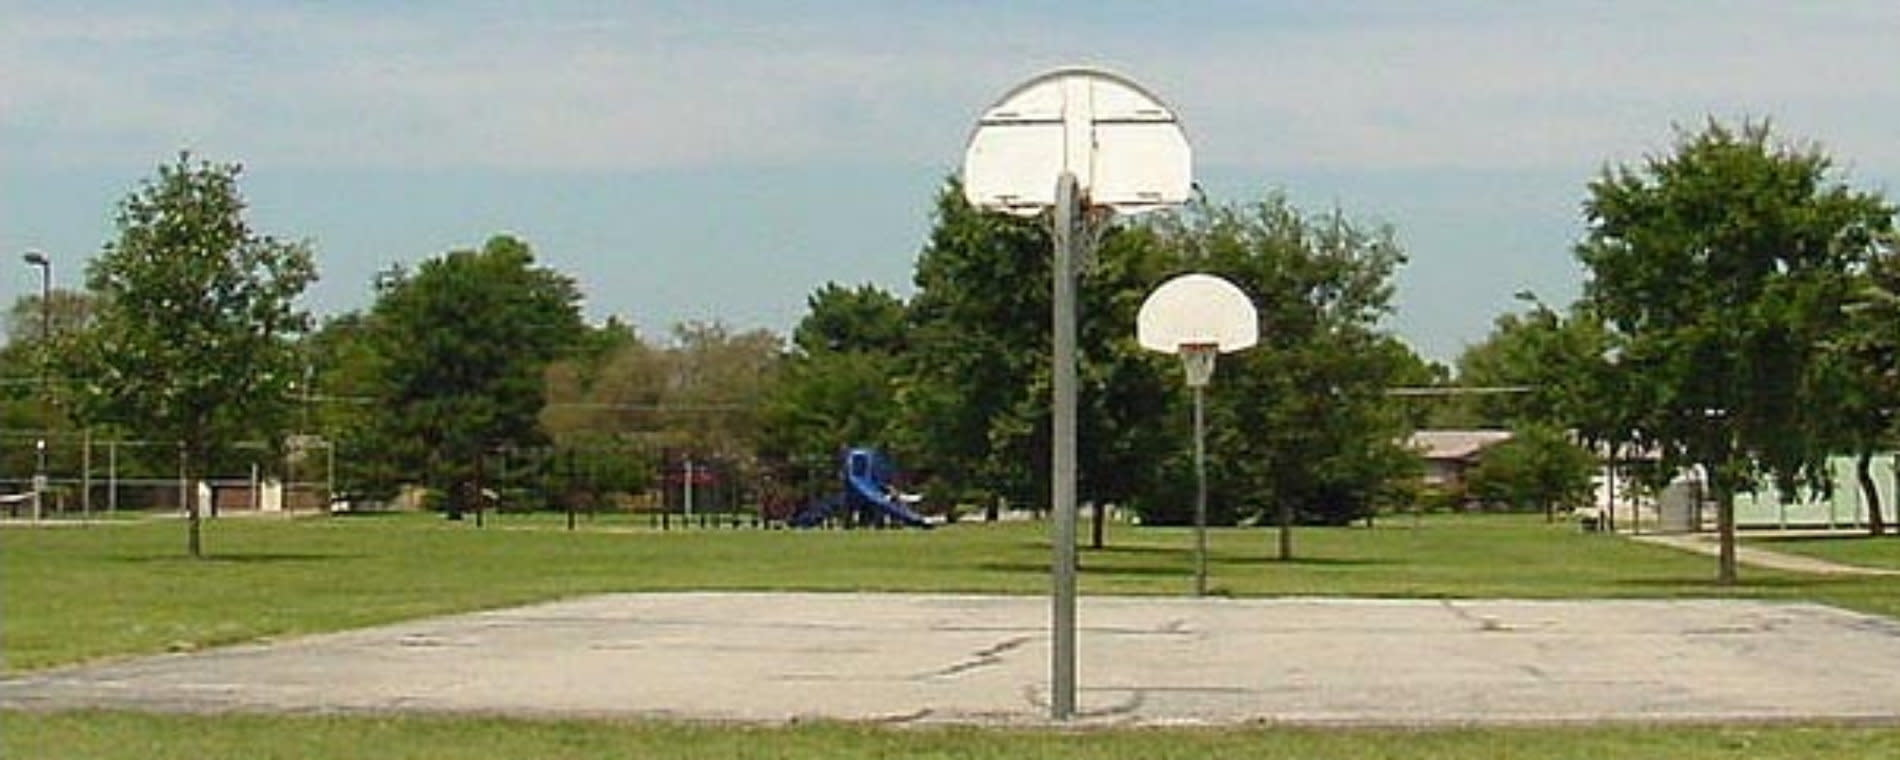 Basketball Courts at Osage Park Wichita